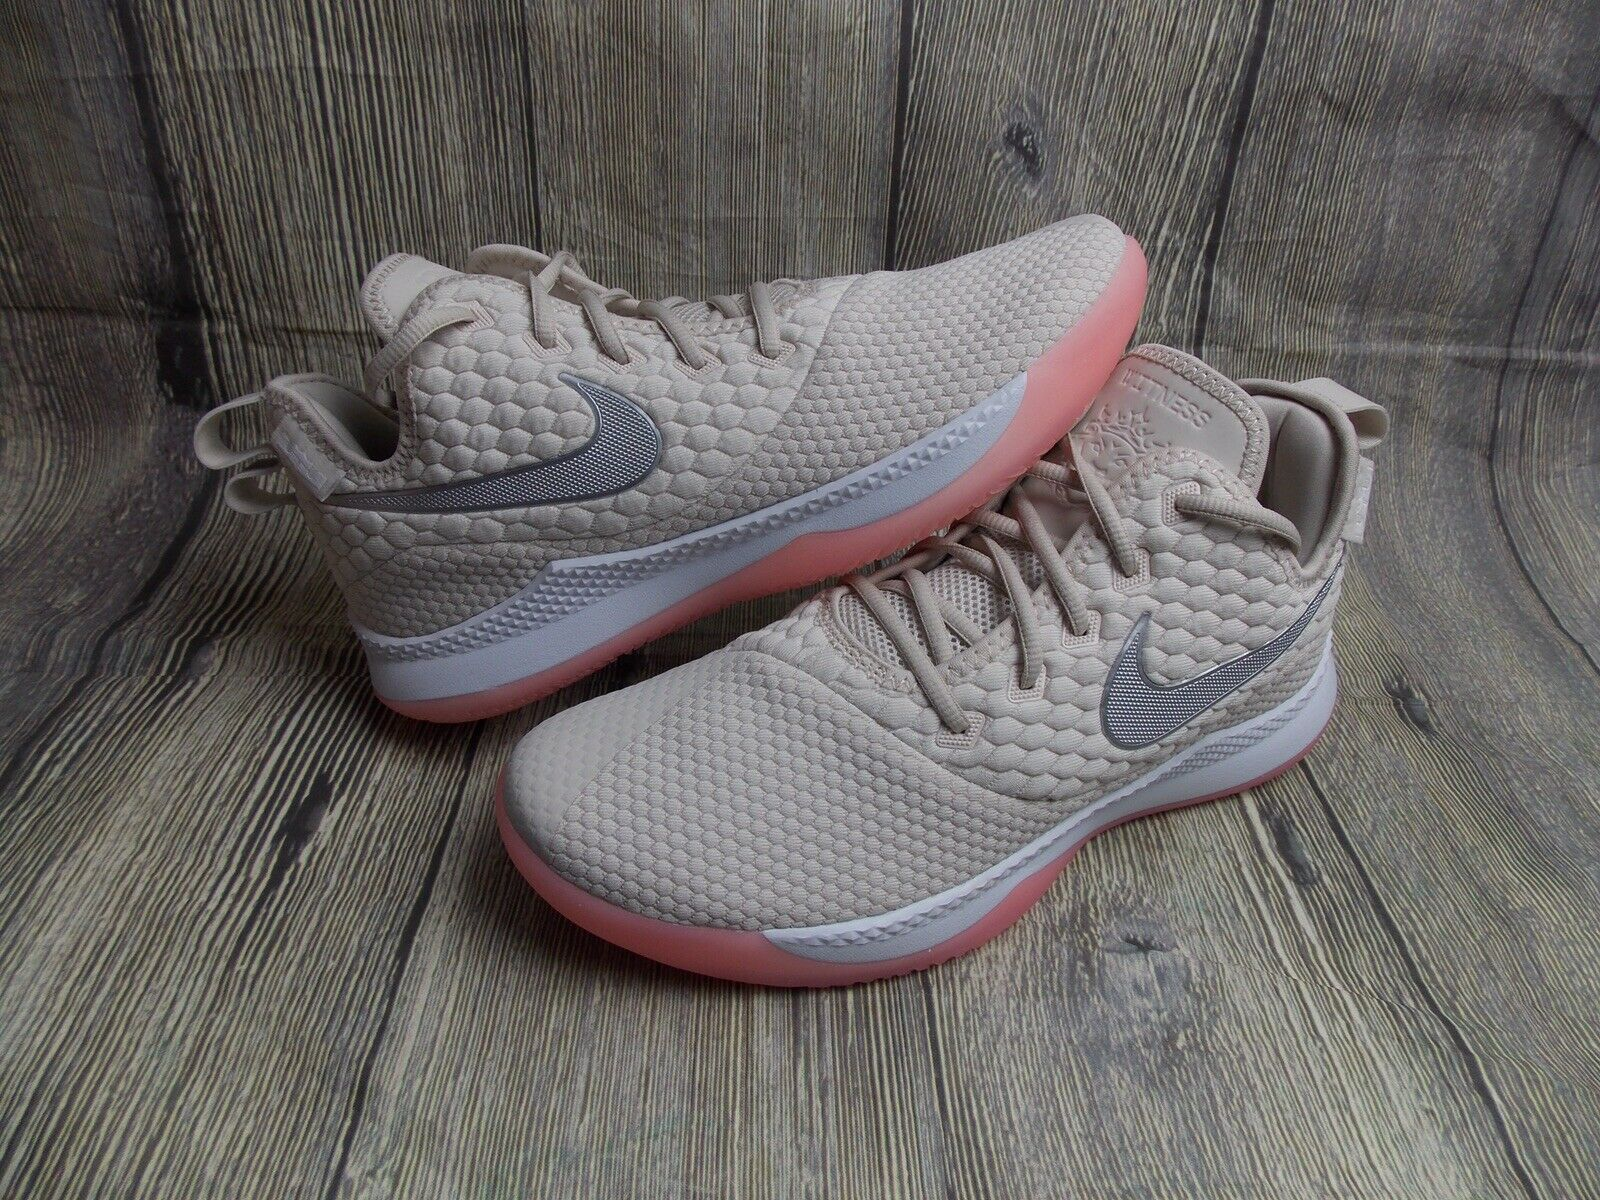 NIKE LIBRON WITNESS III MENS BASKETBALL TRAINERS BOOTS BN 9UK SNEAKERS OREWOOD